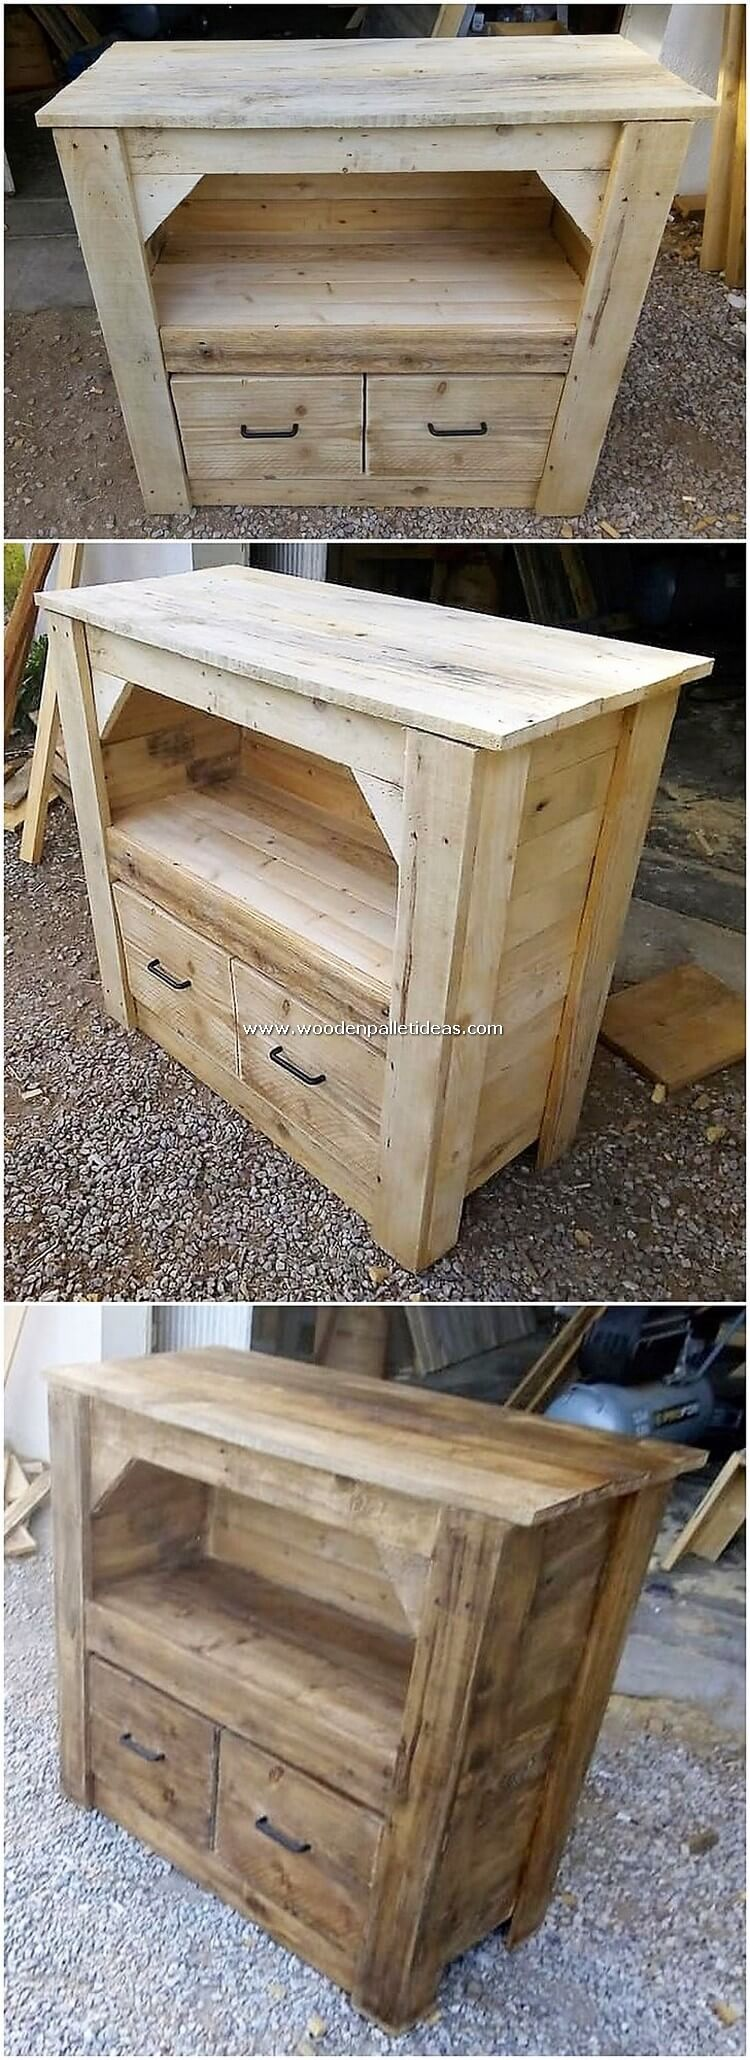 Pallet Wood Cabinet with Drawers